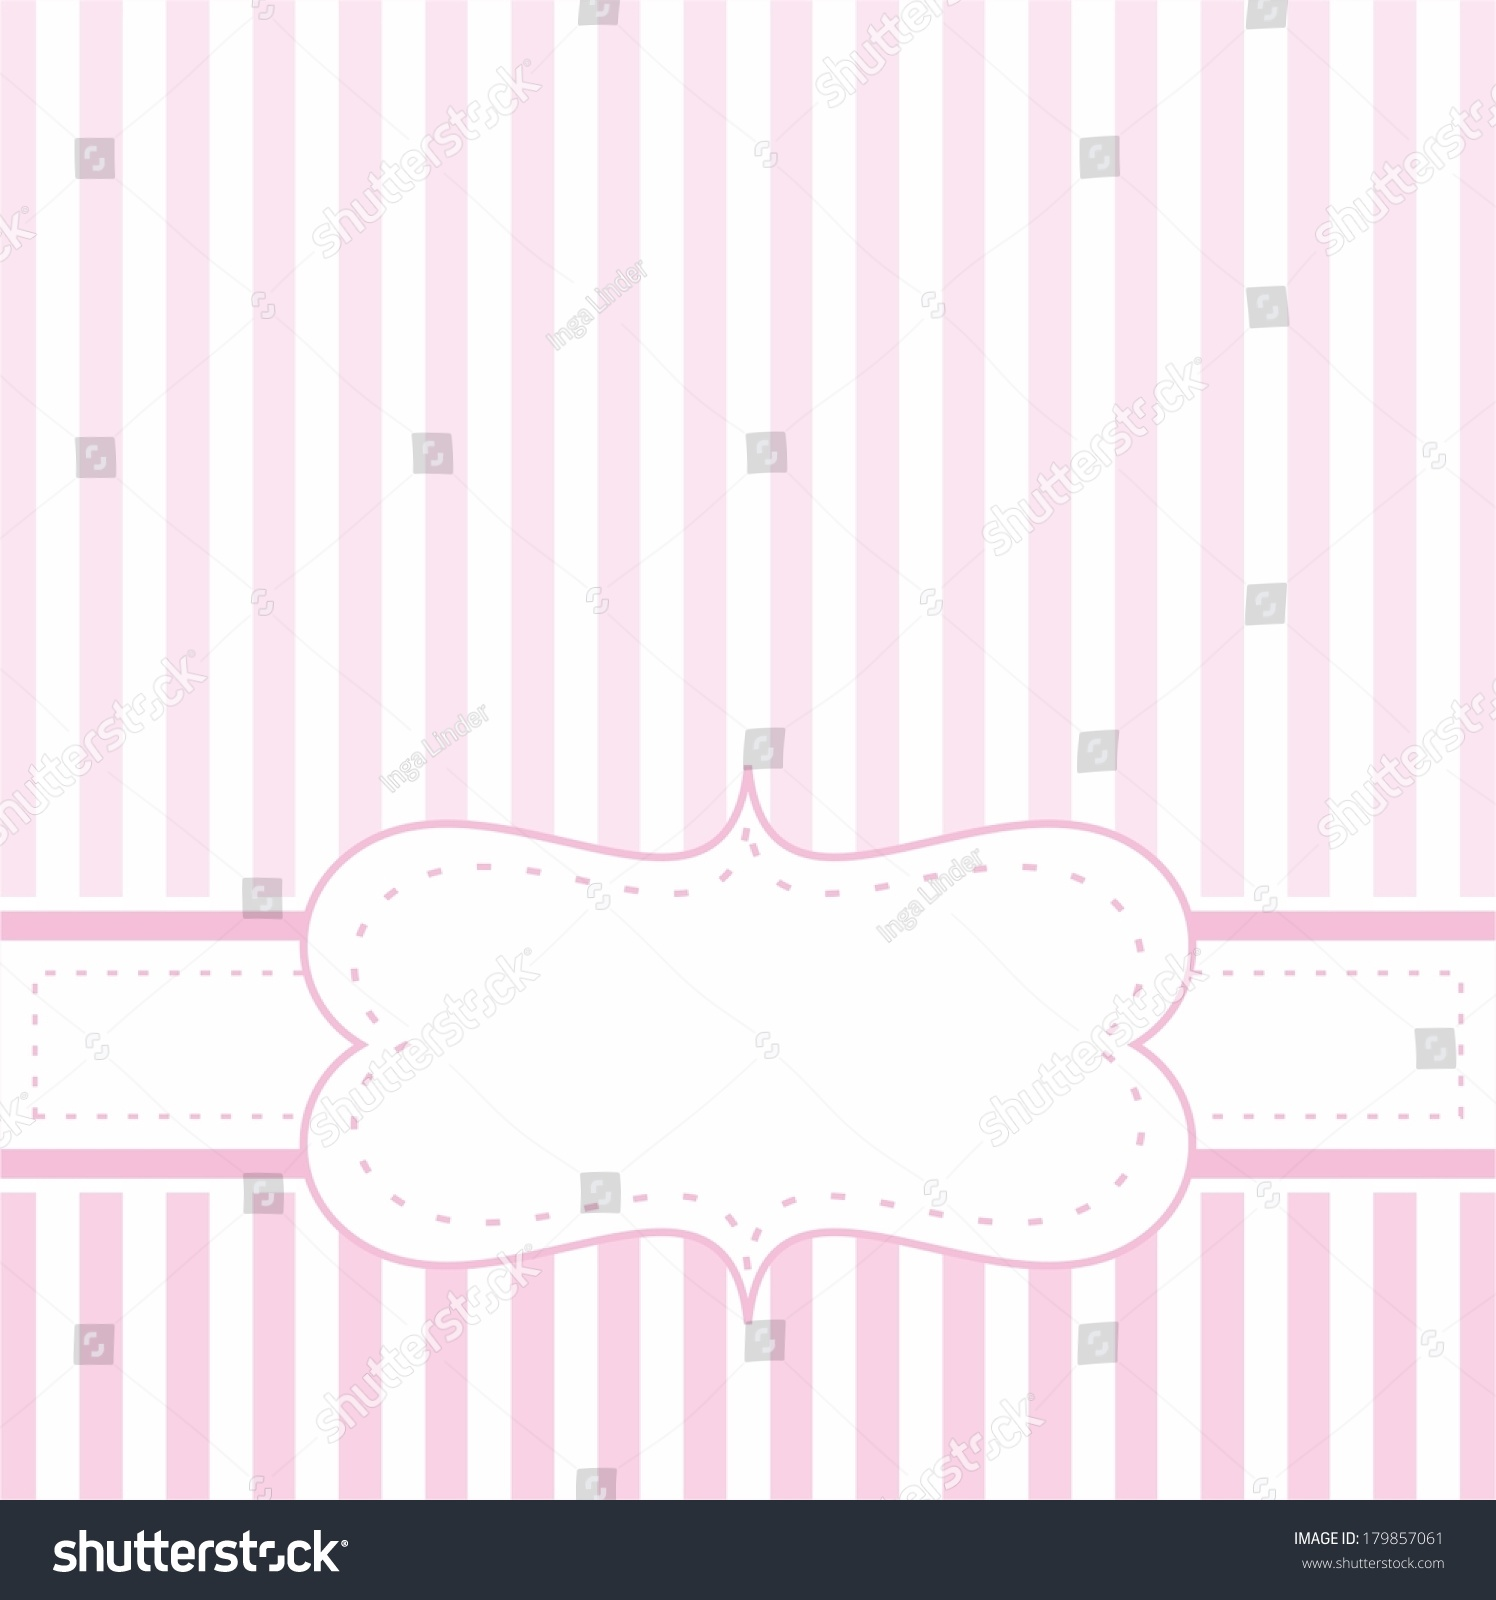 Royalty free pink vector card invitation for baby 179857061 stock pink vector card invitation for baby shower wedding or birthday party with white stripes stopboris Images